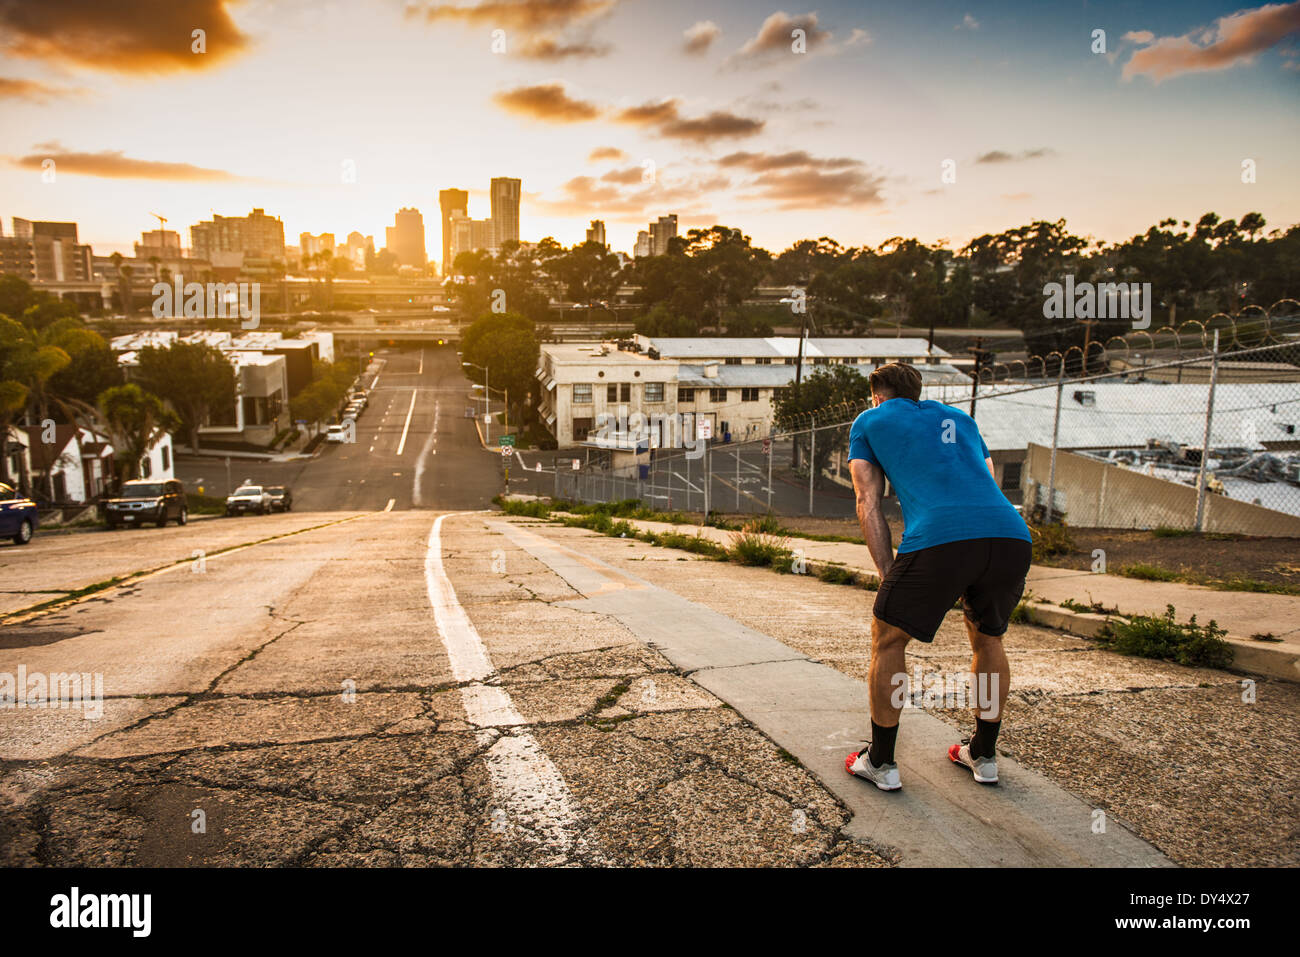 Young male runner en faisant une pause en haut d'une colline escarpée ville Photo Stock